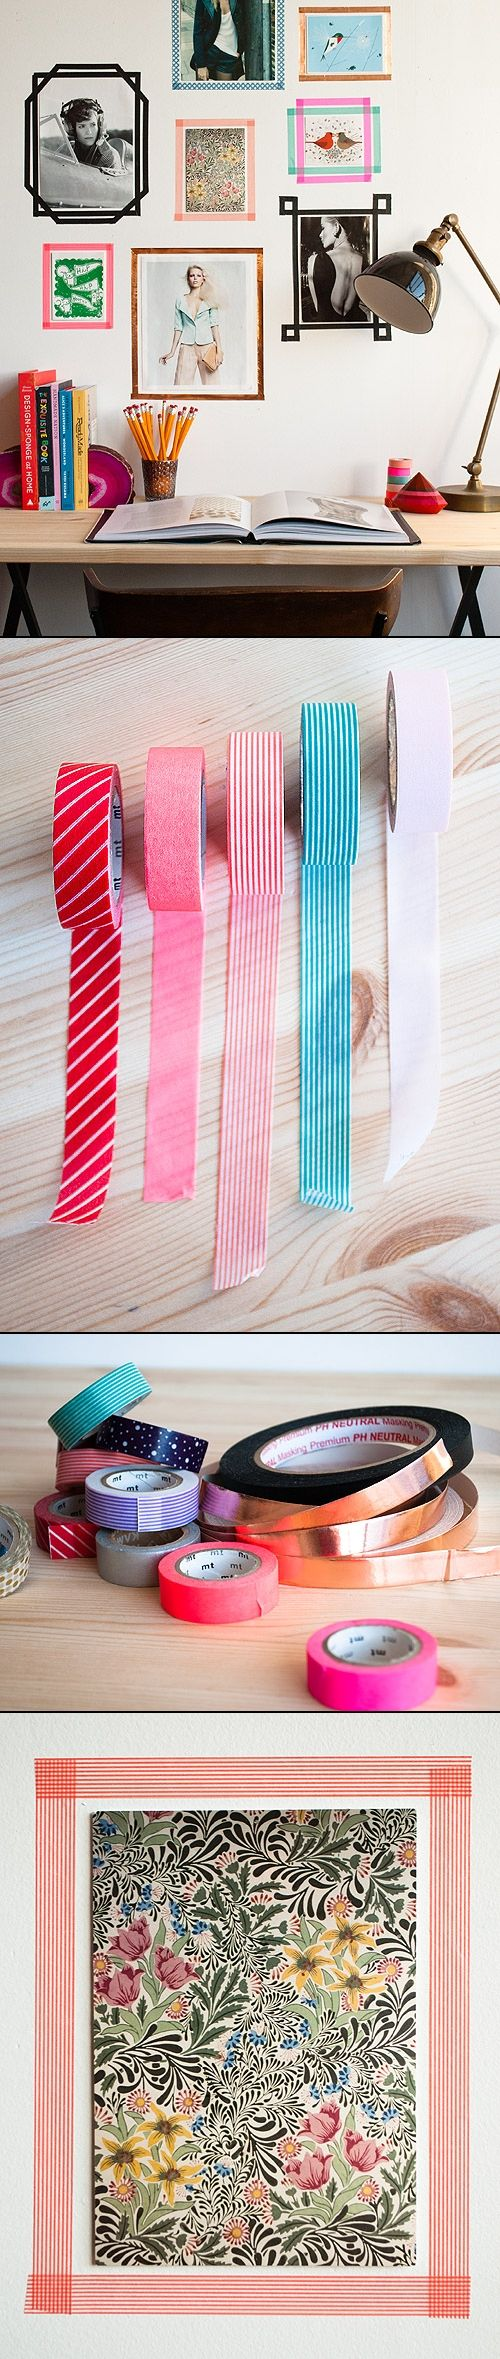 TAPE PICTURES FRAME. I totally love this idea!